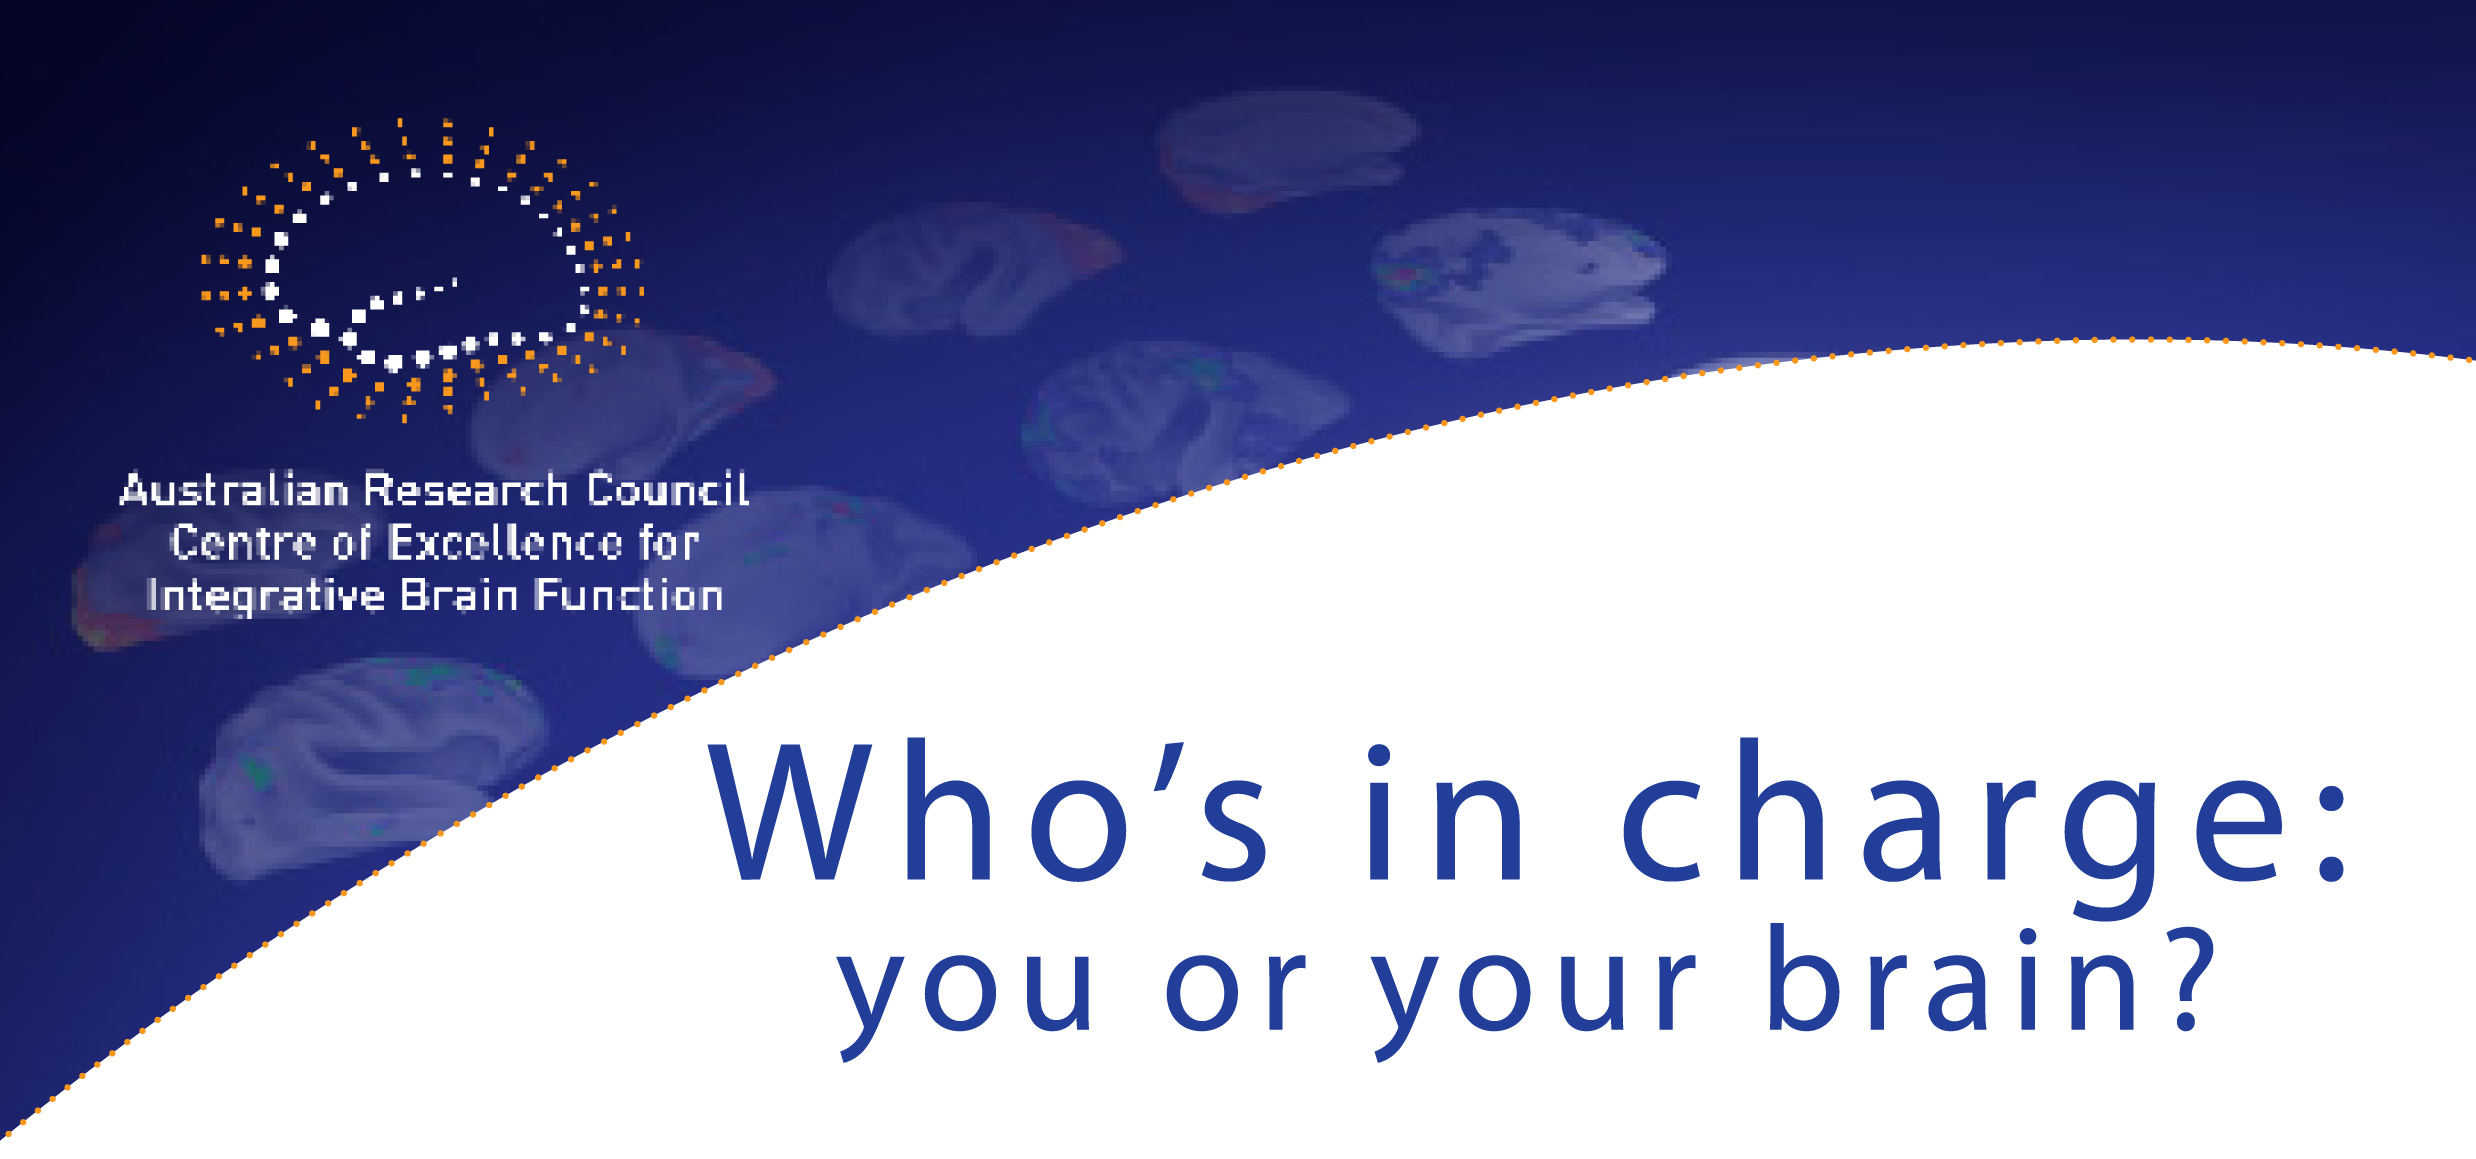 Event title: Who's in charge: you or your brain?